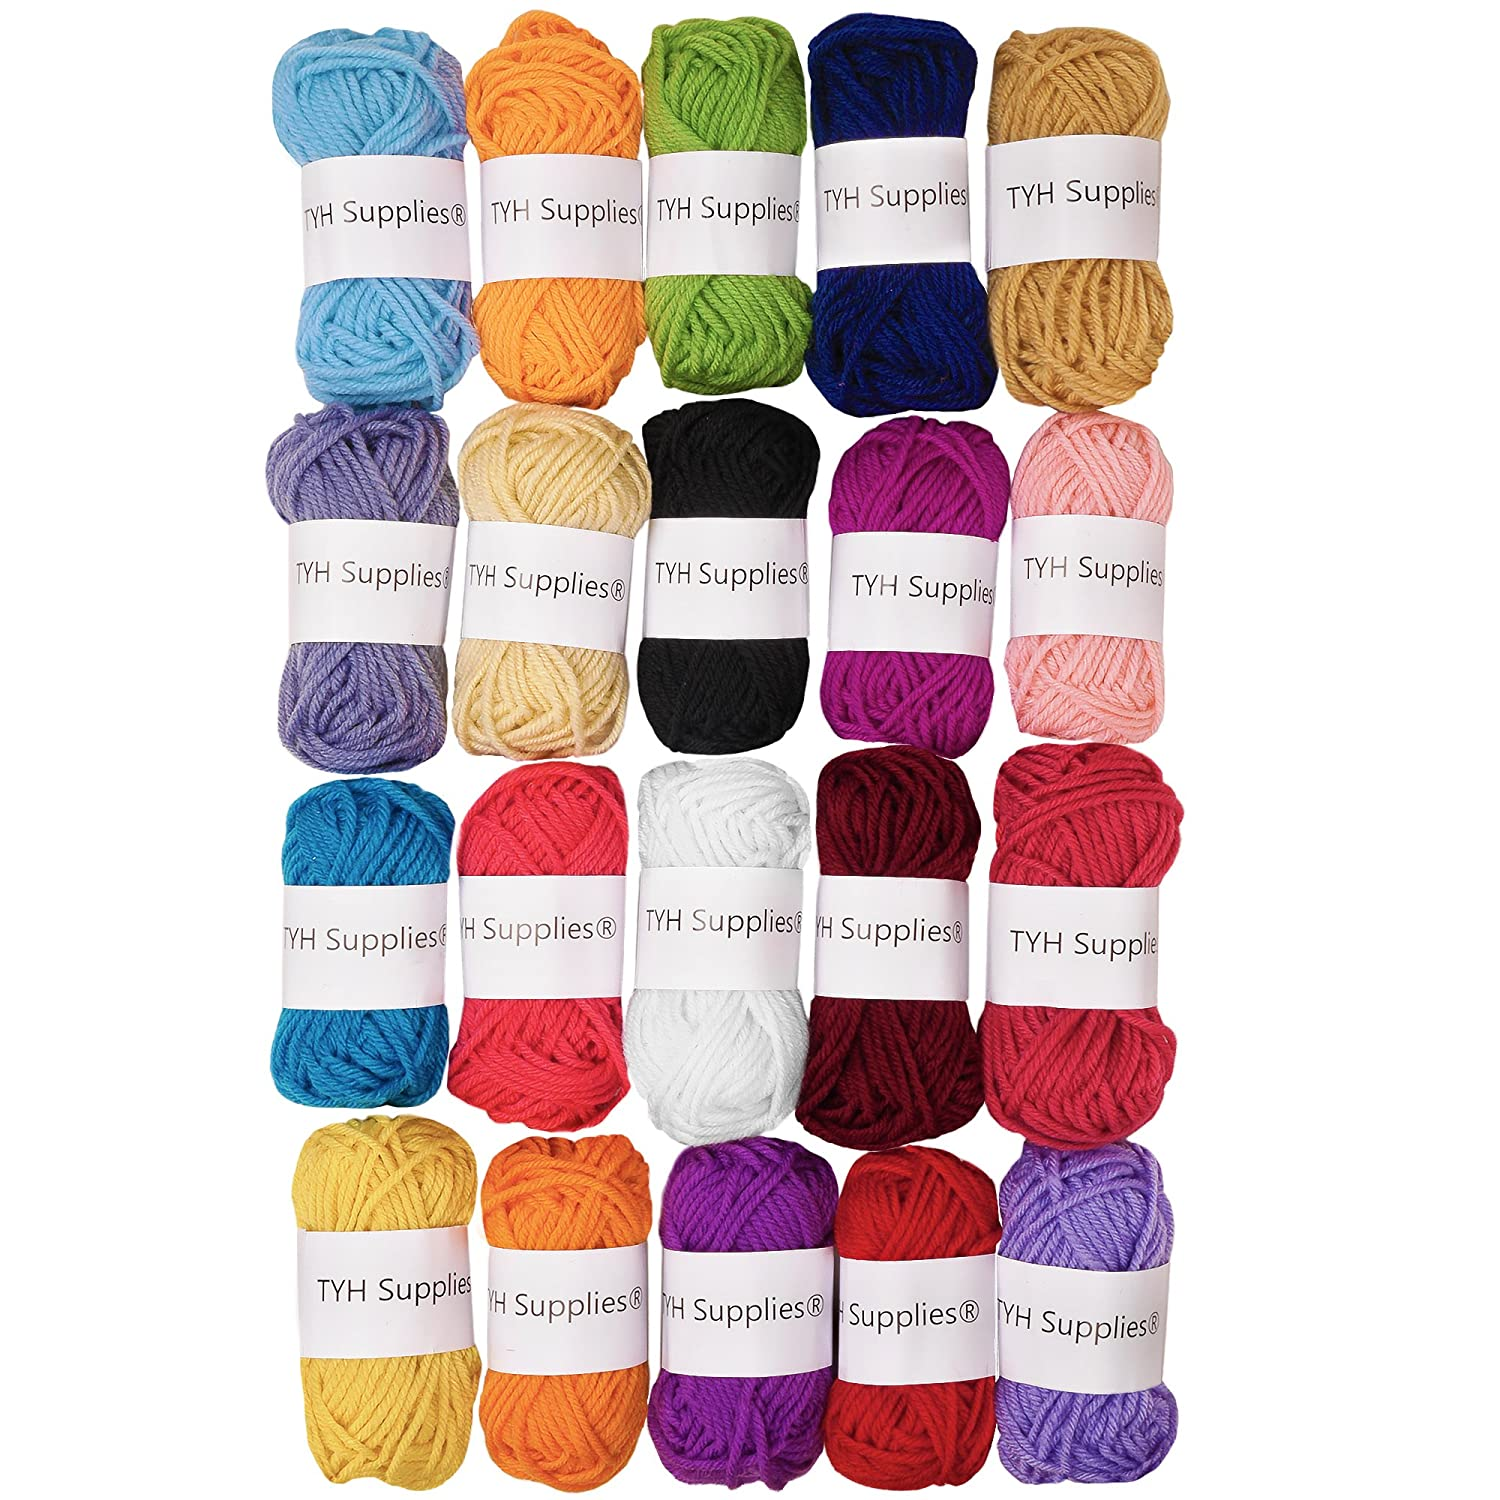 TYH Supplies Acrylic Yarn Assorted Colors Skeins - Perfect for Mini Knitting and Crochet Project (Assorted, 44 Yard - 50 Pack)